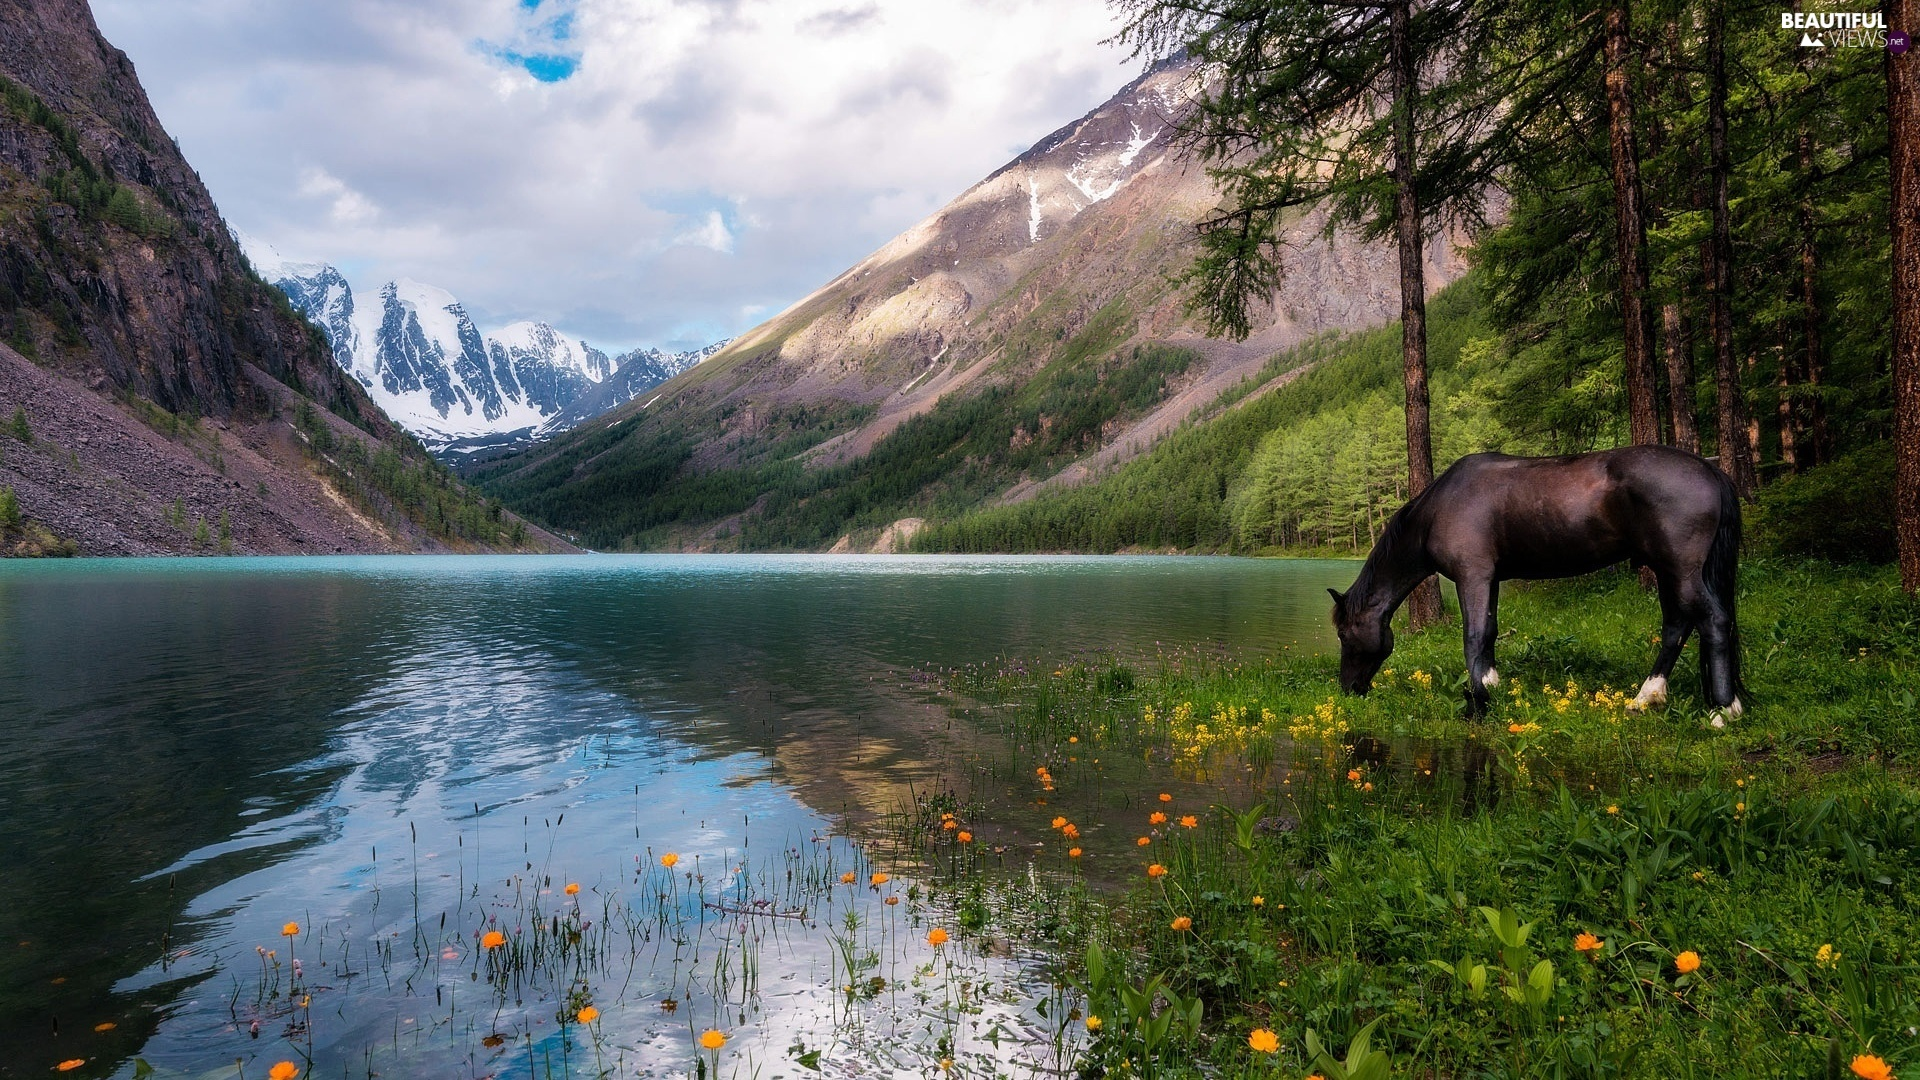 Horse, Mountains, trees, viewes, Flowers, lake